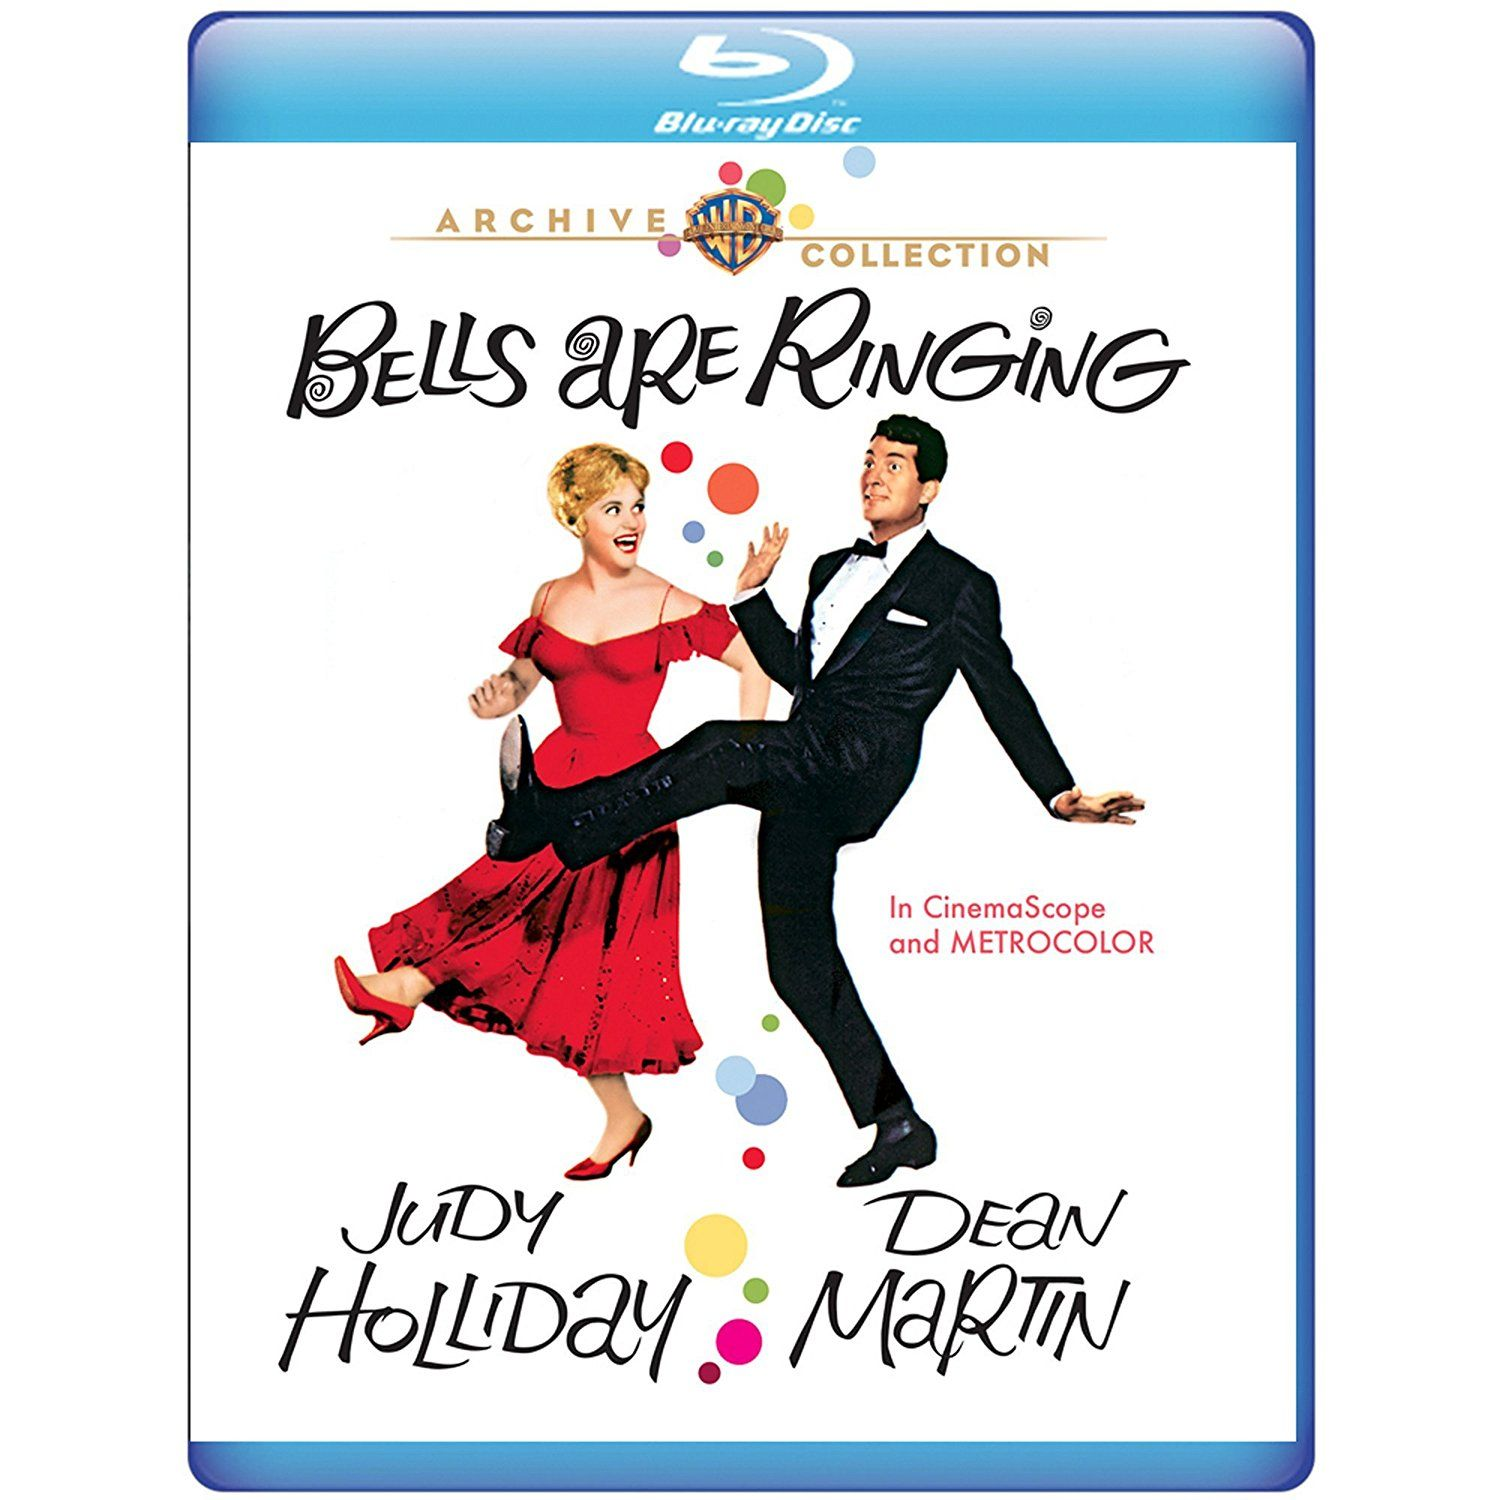 BELLS ARE RINGING (1960) Bluray Judy holliday, Musical